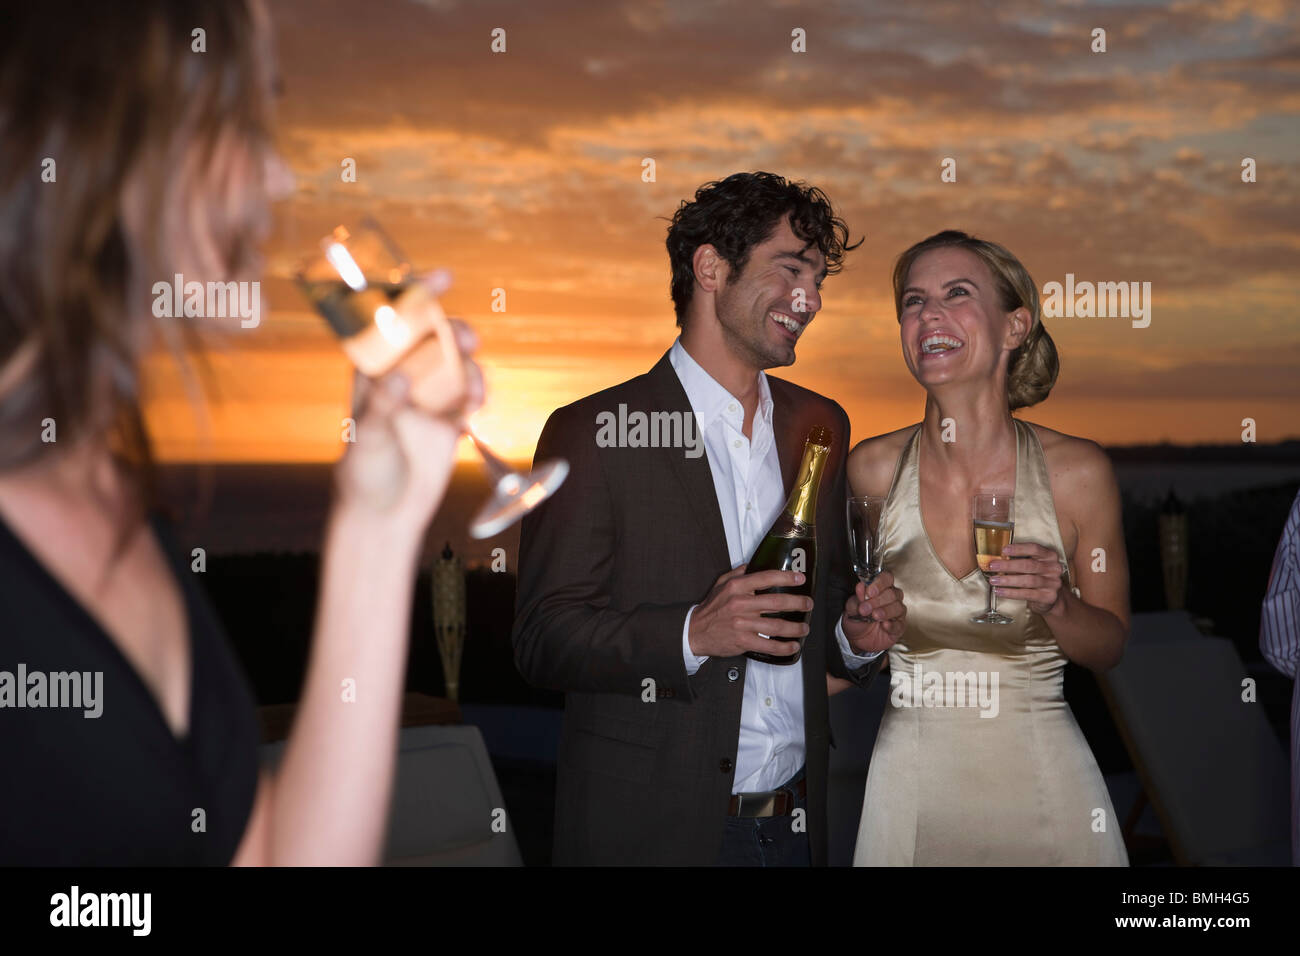 Party time - Stock Image